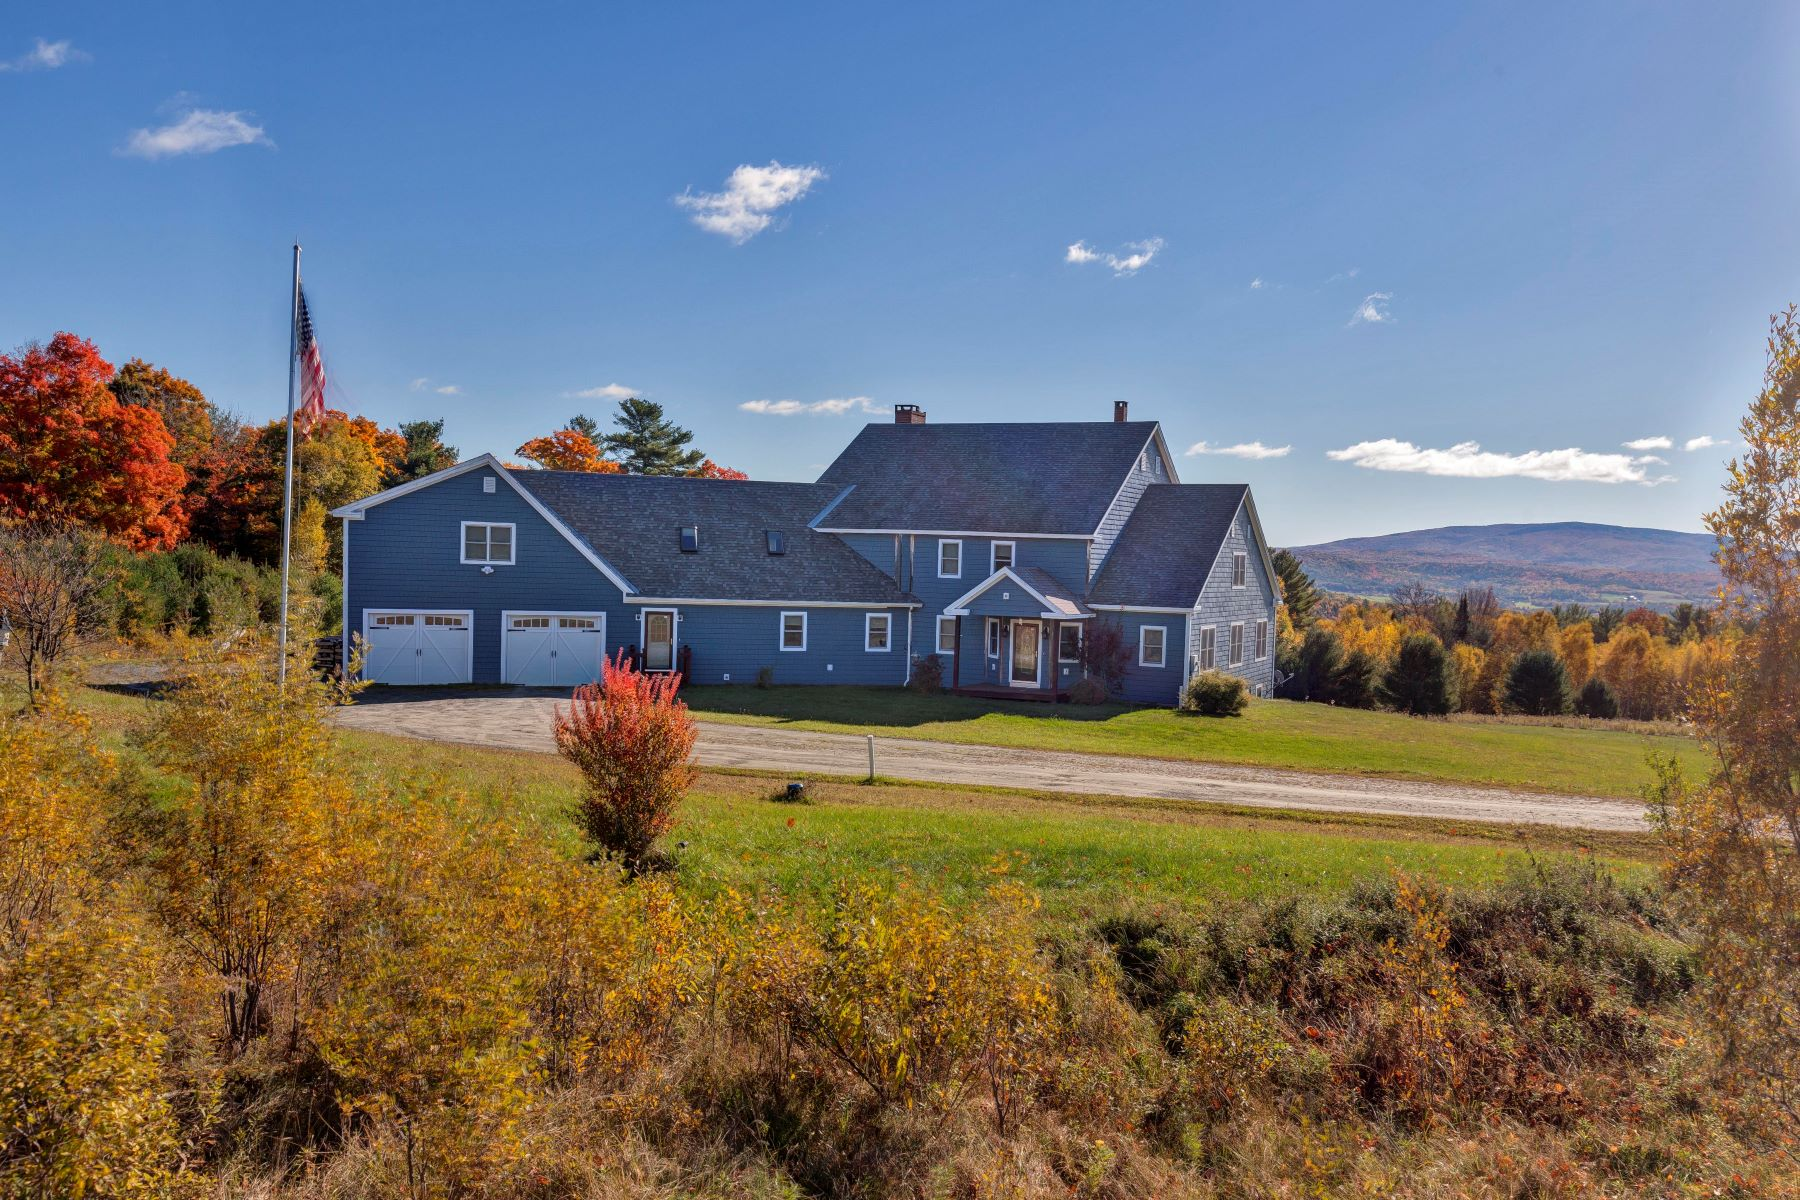 Single Family Home for Sale at Home for entertaining with views in Newbury 1235 Rogers Hill Rd, Newbury, Vermont, 05051 United States